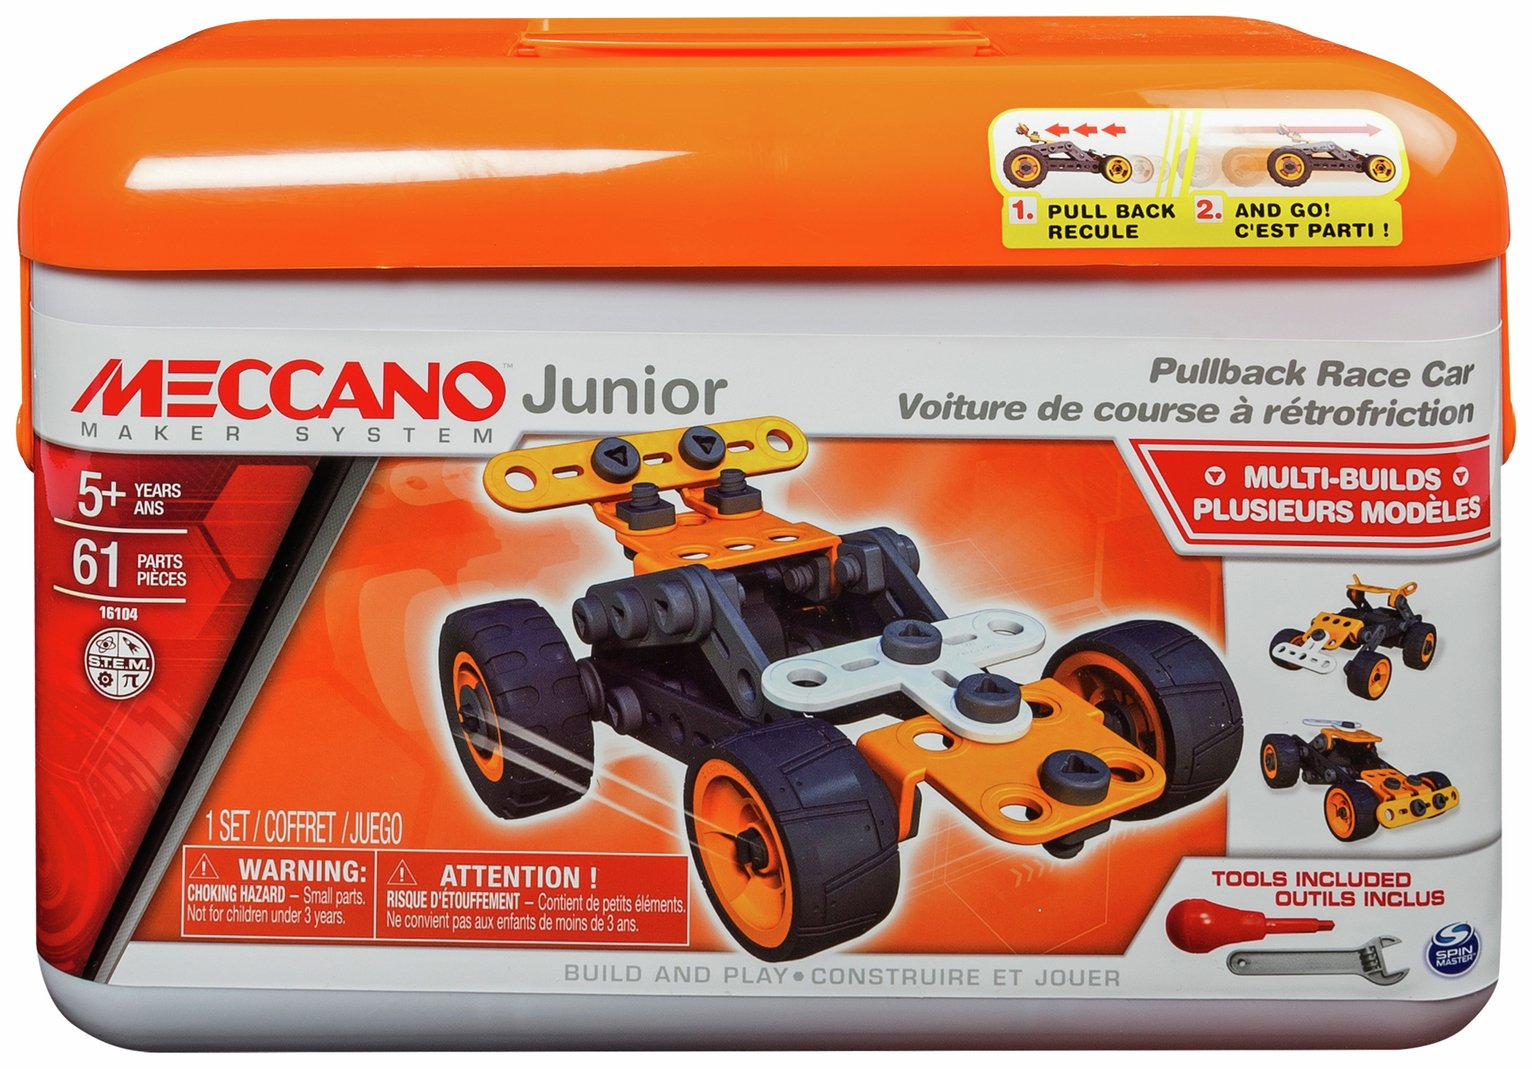 Meccano Find Offers Online And Compare Prices At Wunderstore Relays Electronics In Junior Tool Box Assortment From